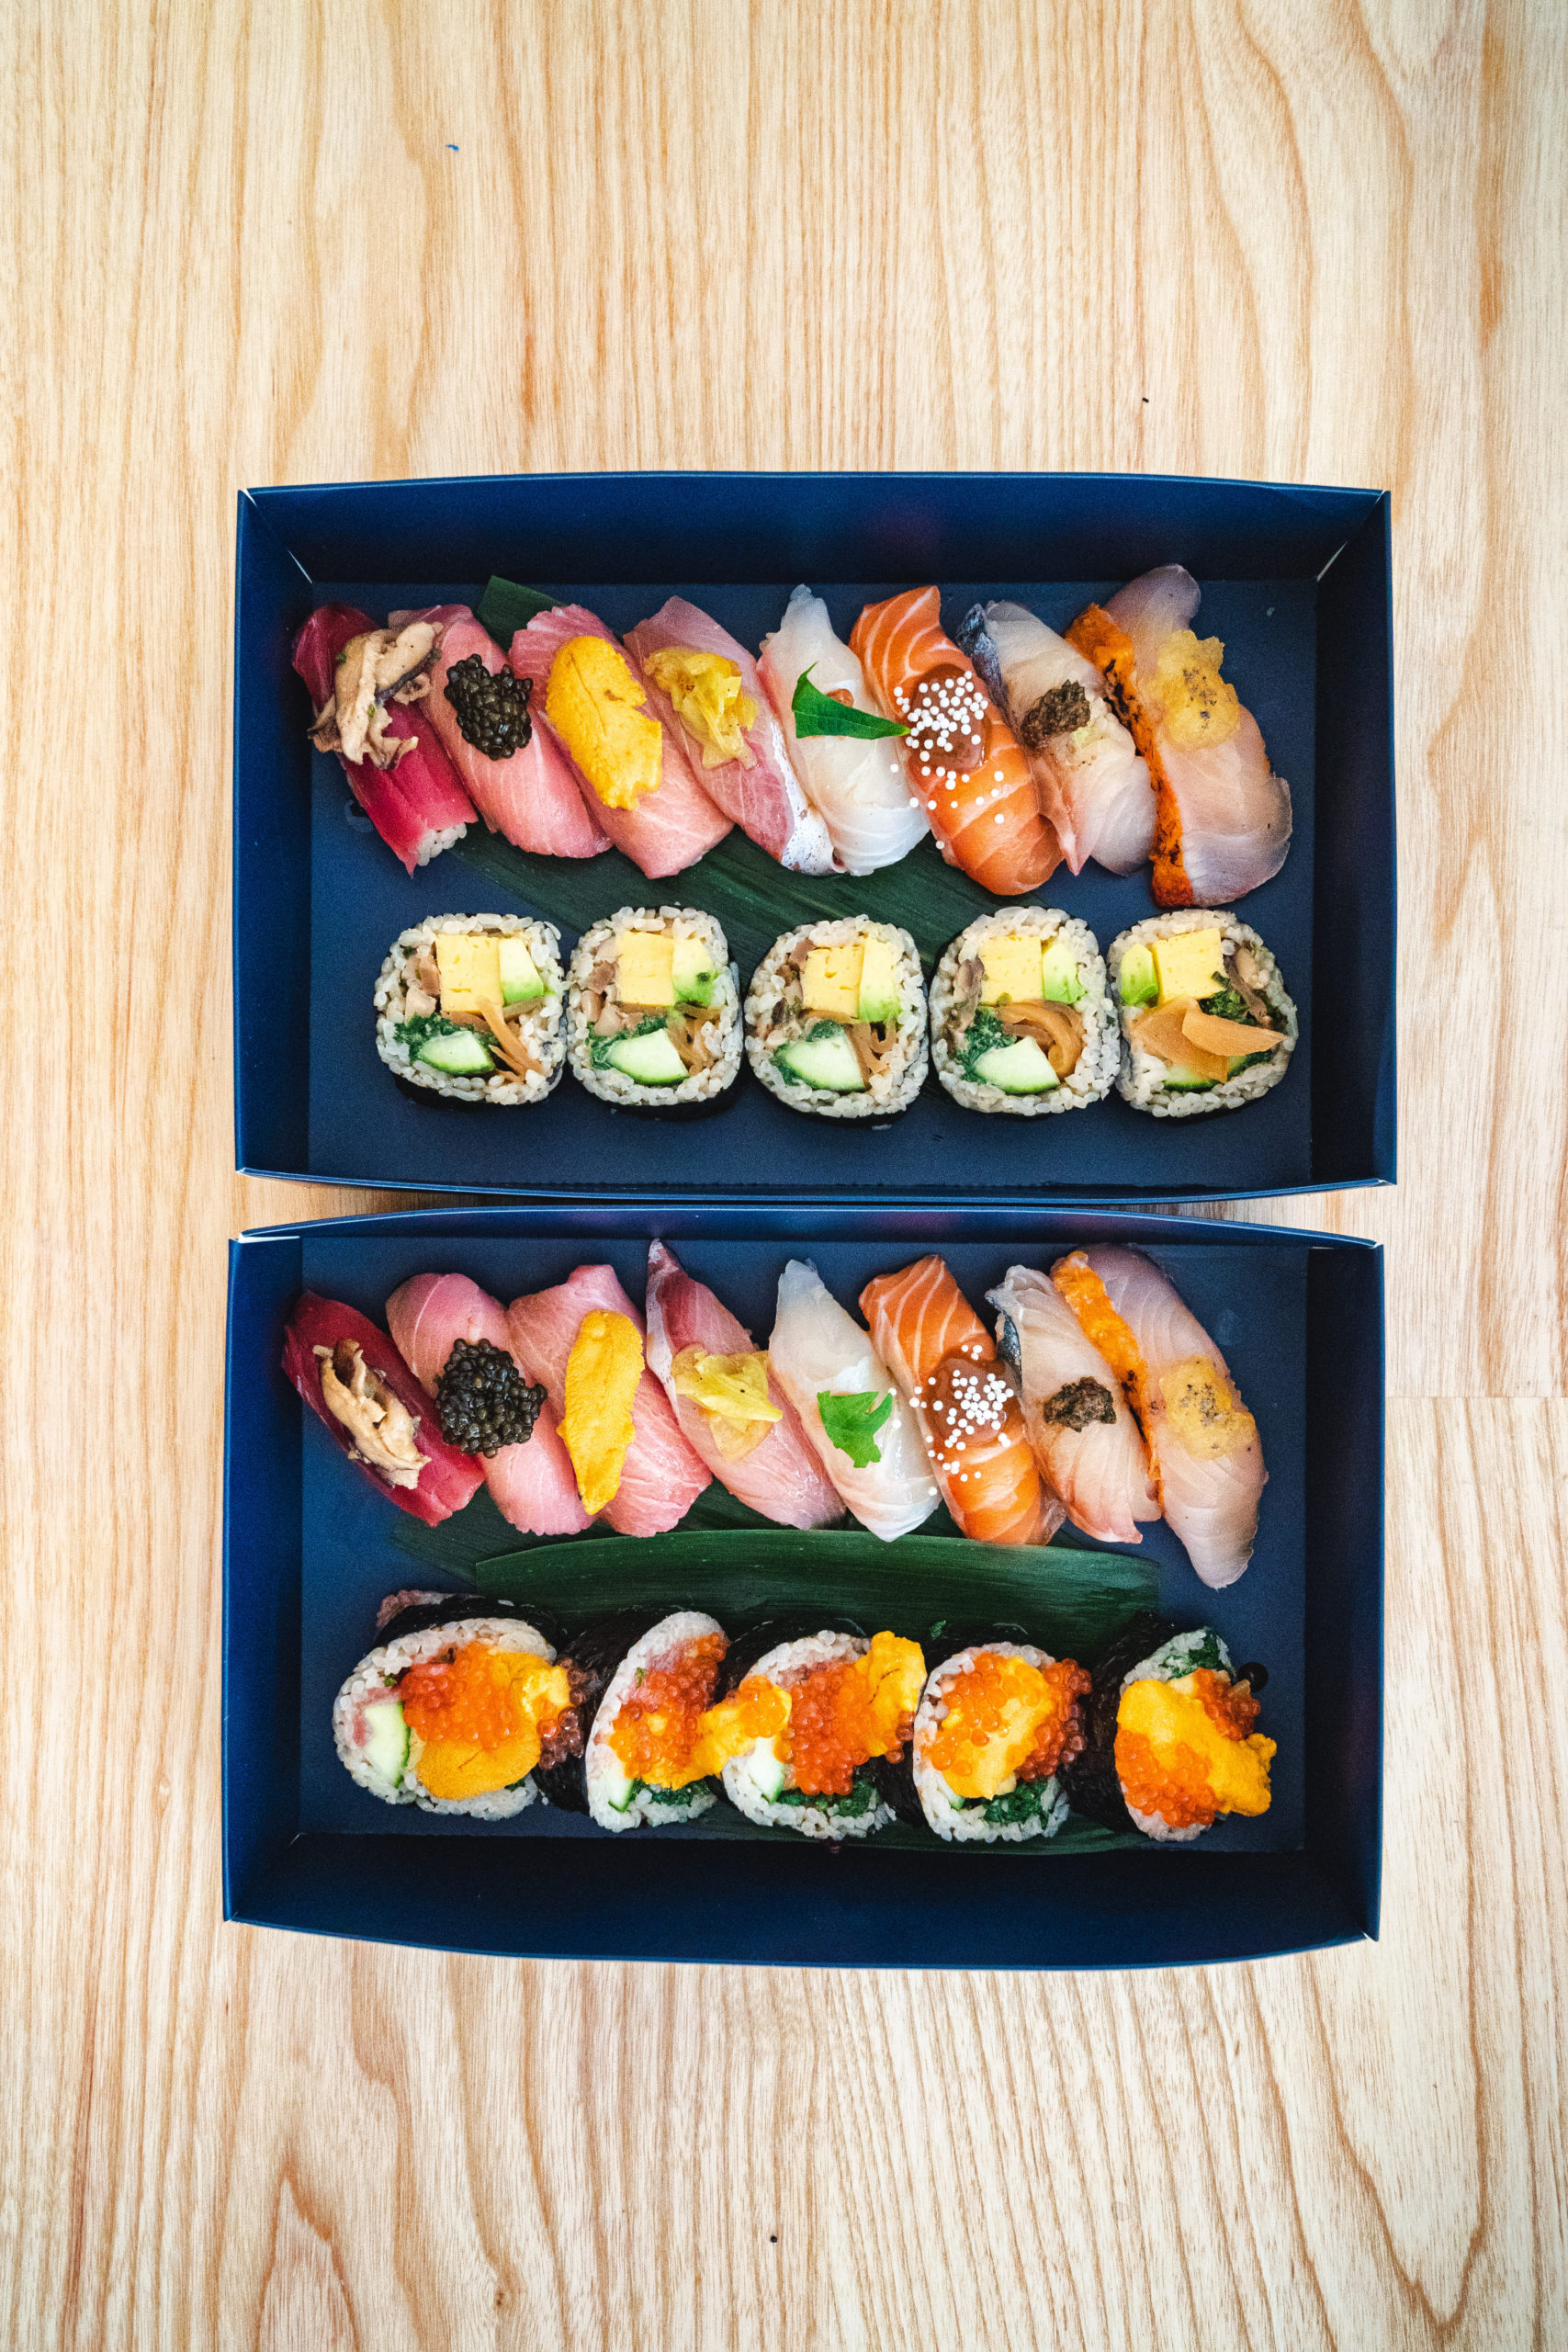 Kissaki's menu offers its signature premium omakase boxes, specialty rolls and more.